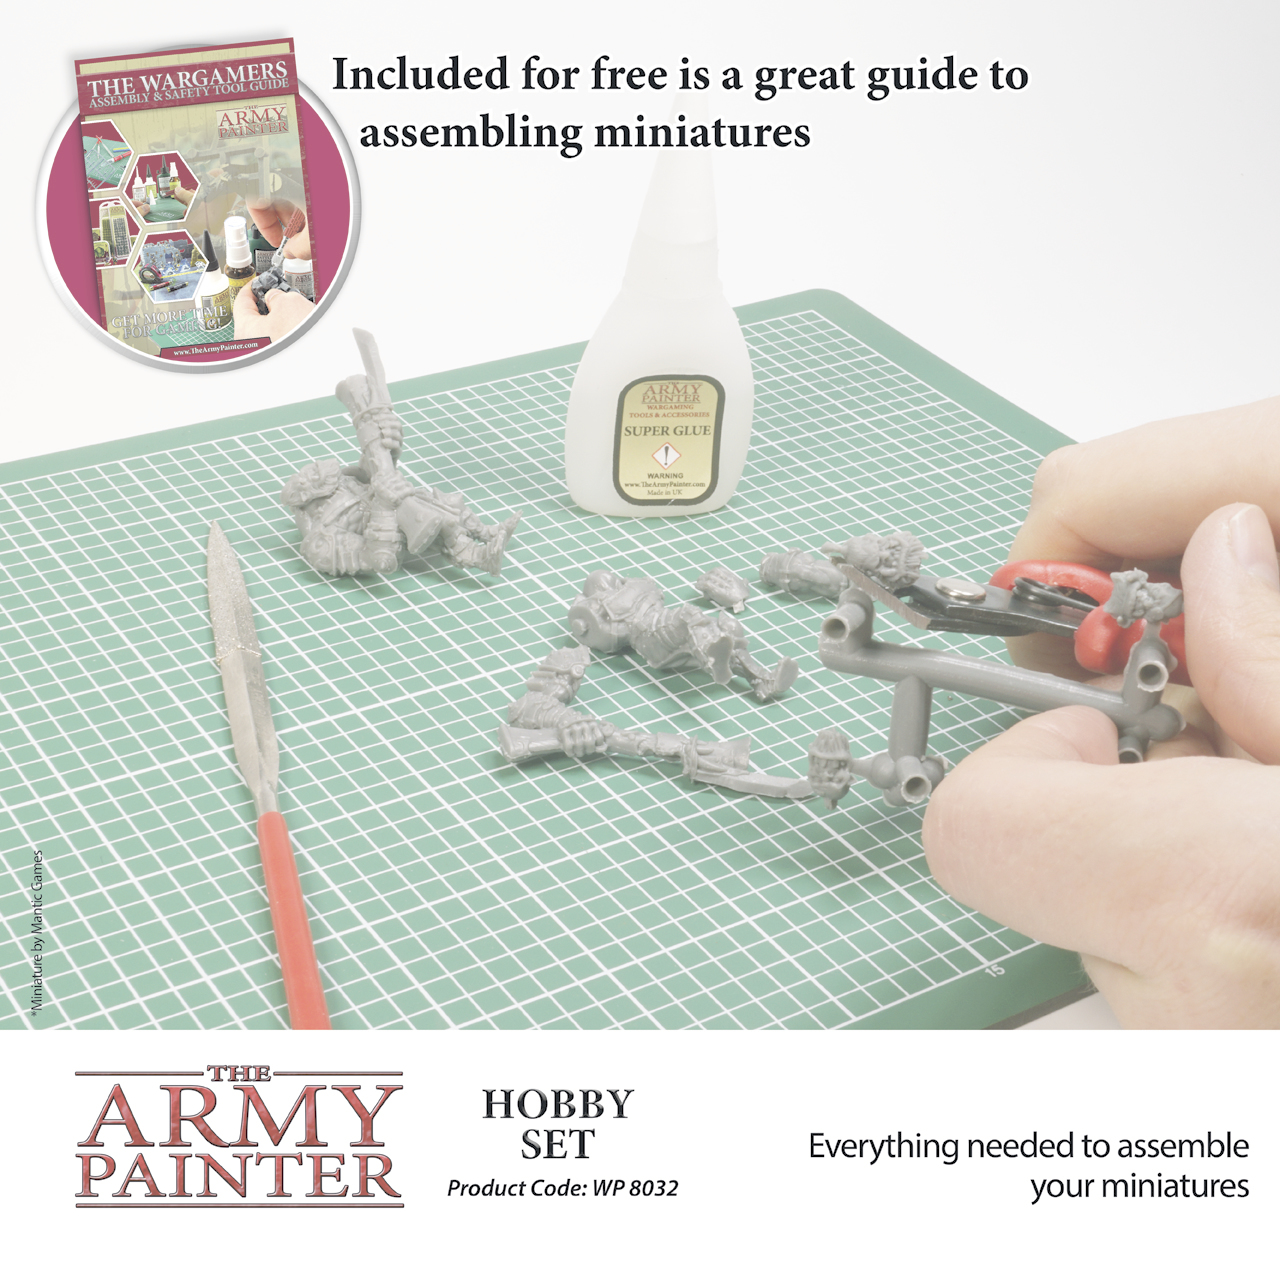 Army Painter Hobby Set image